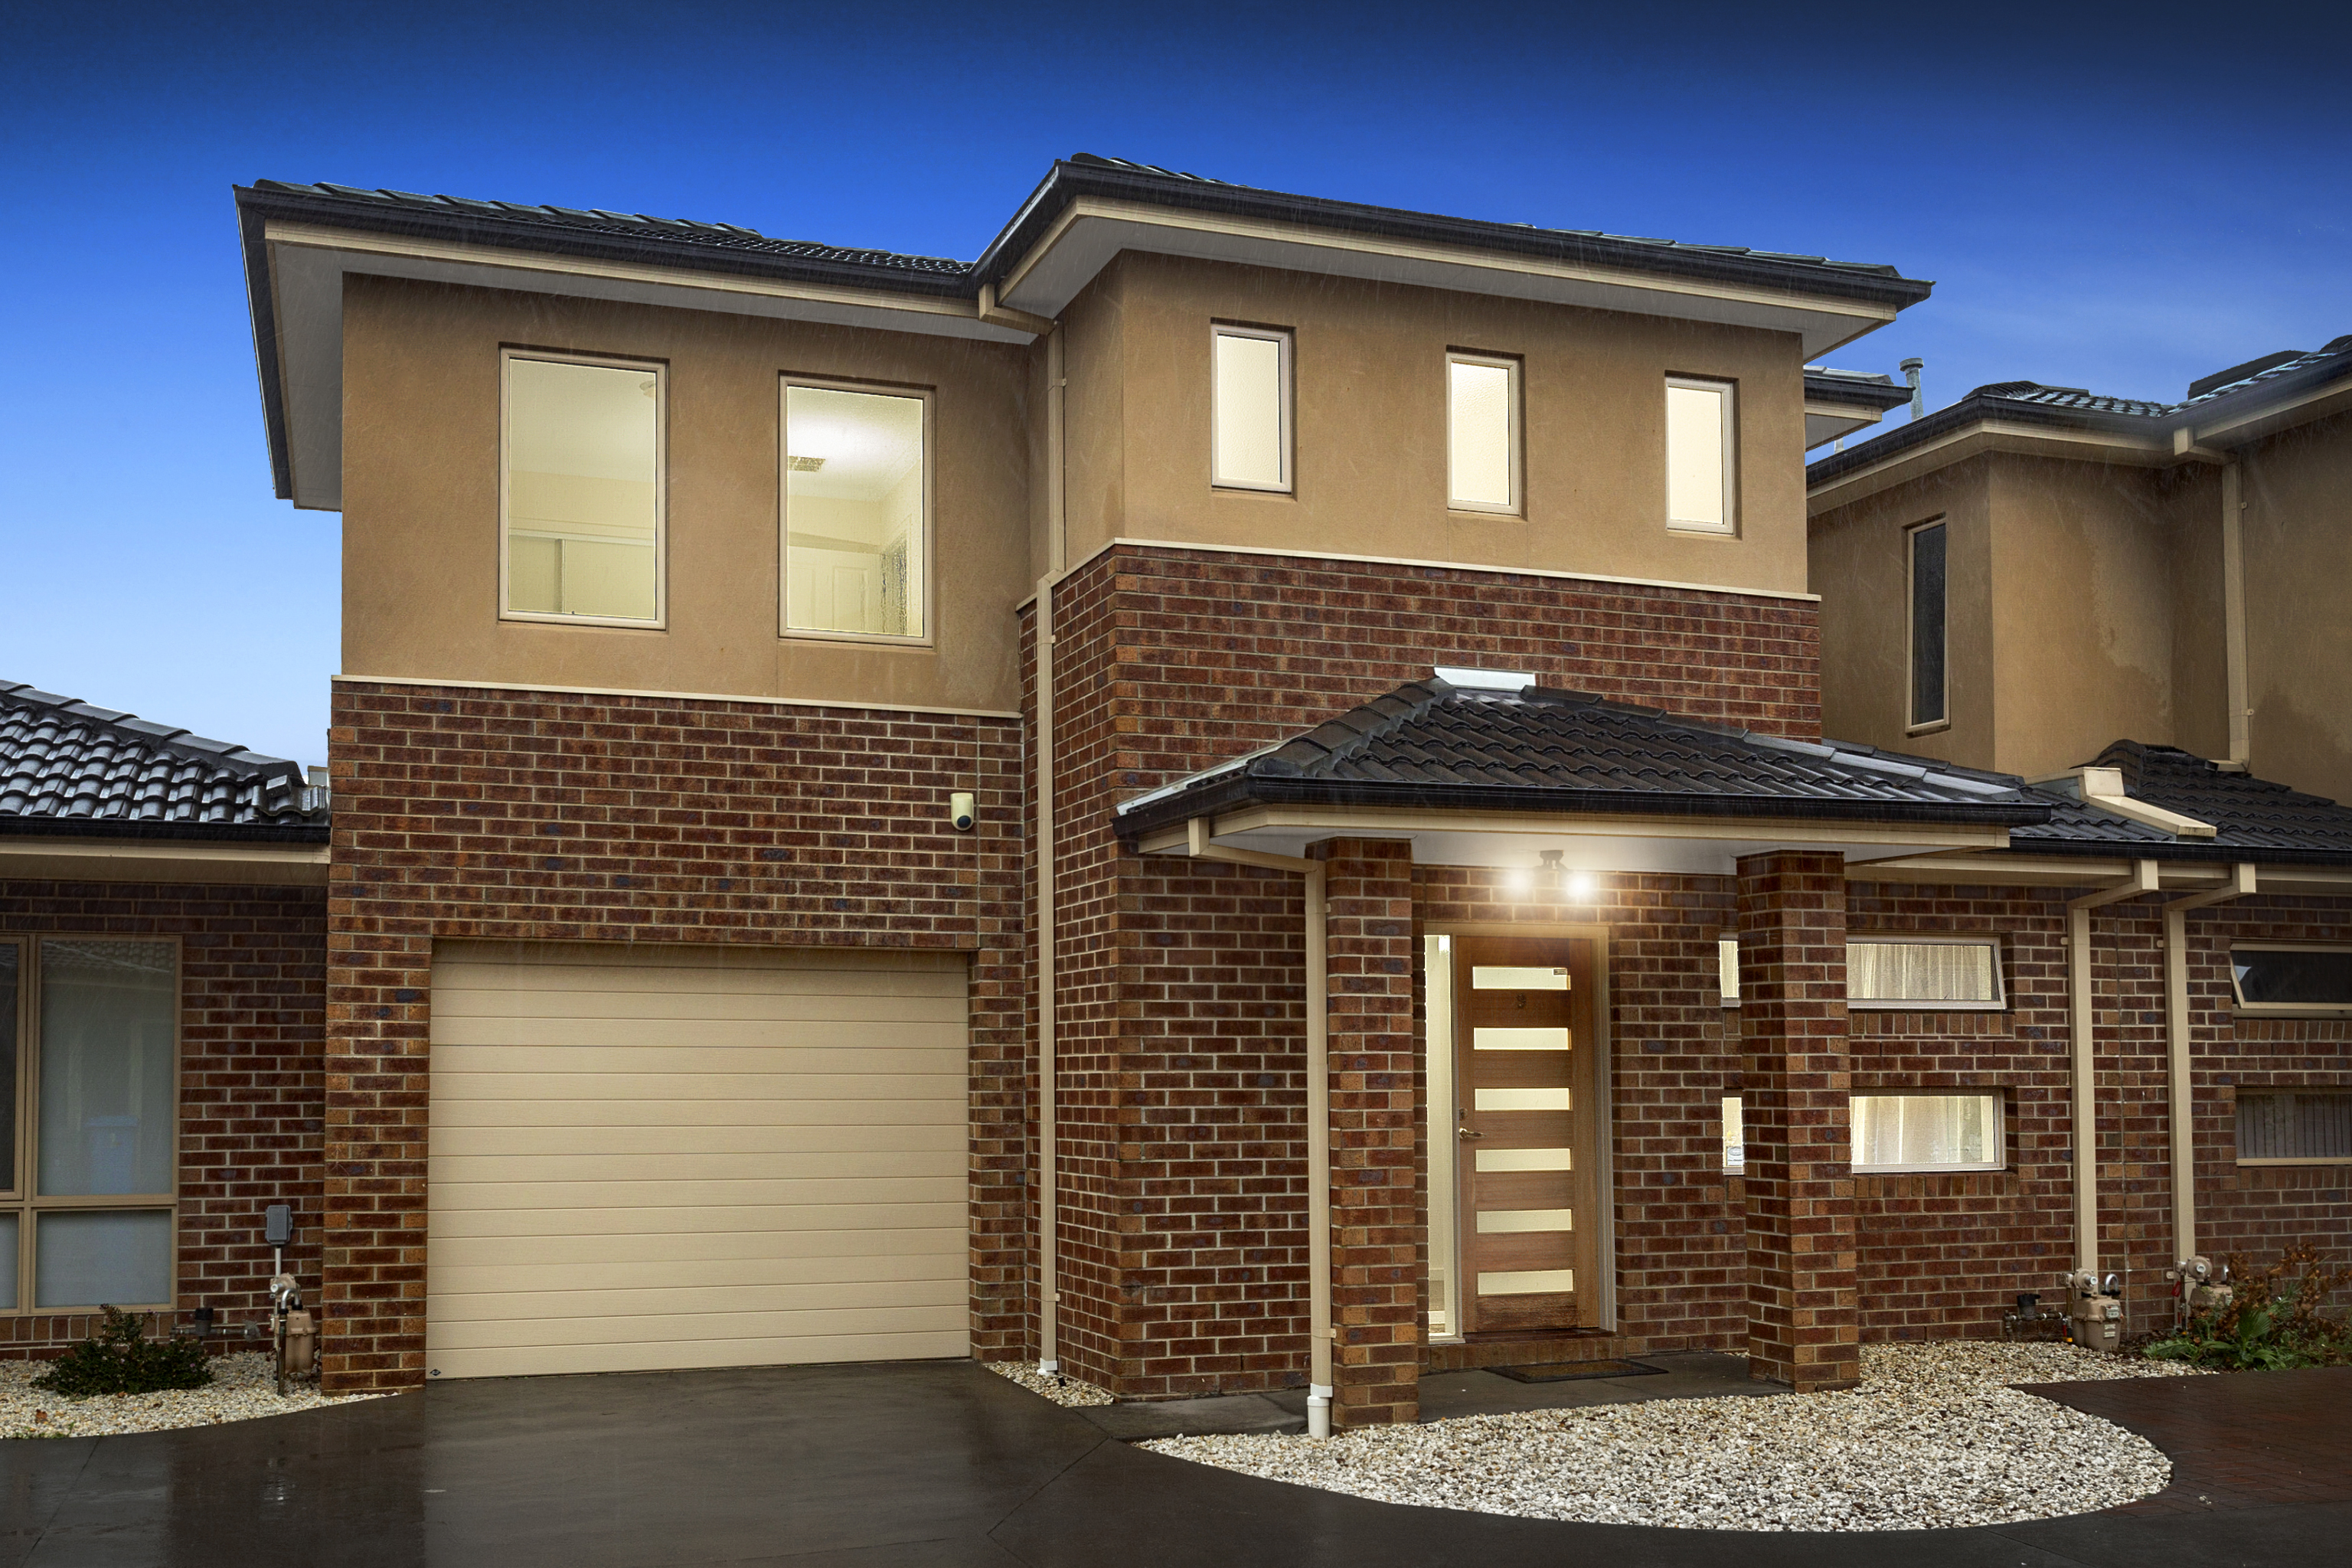 9/77 Frawley Road, HALLAM, VIC, 3803 - Image